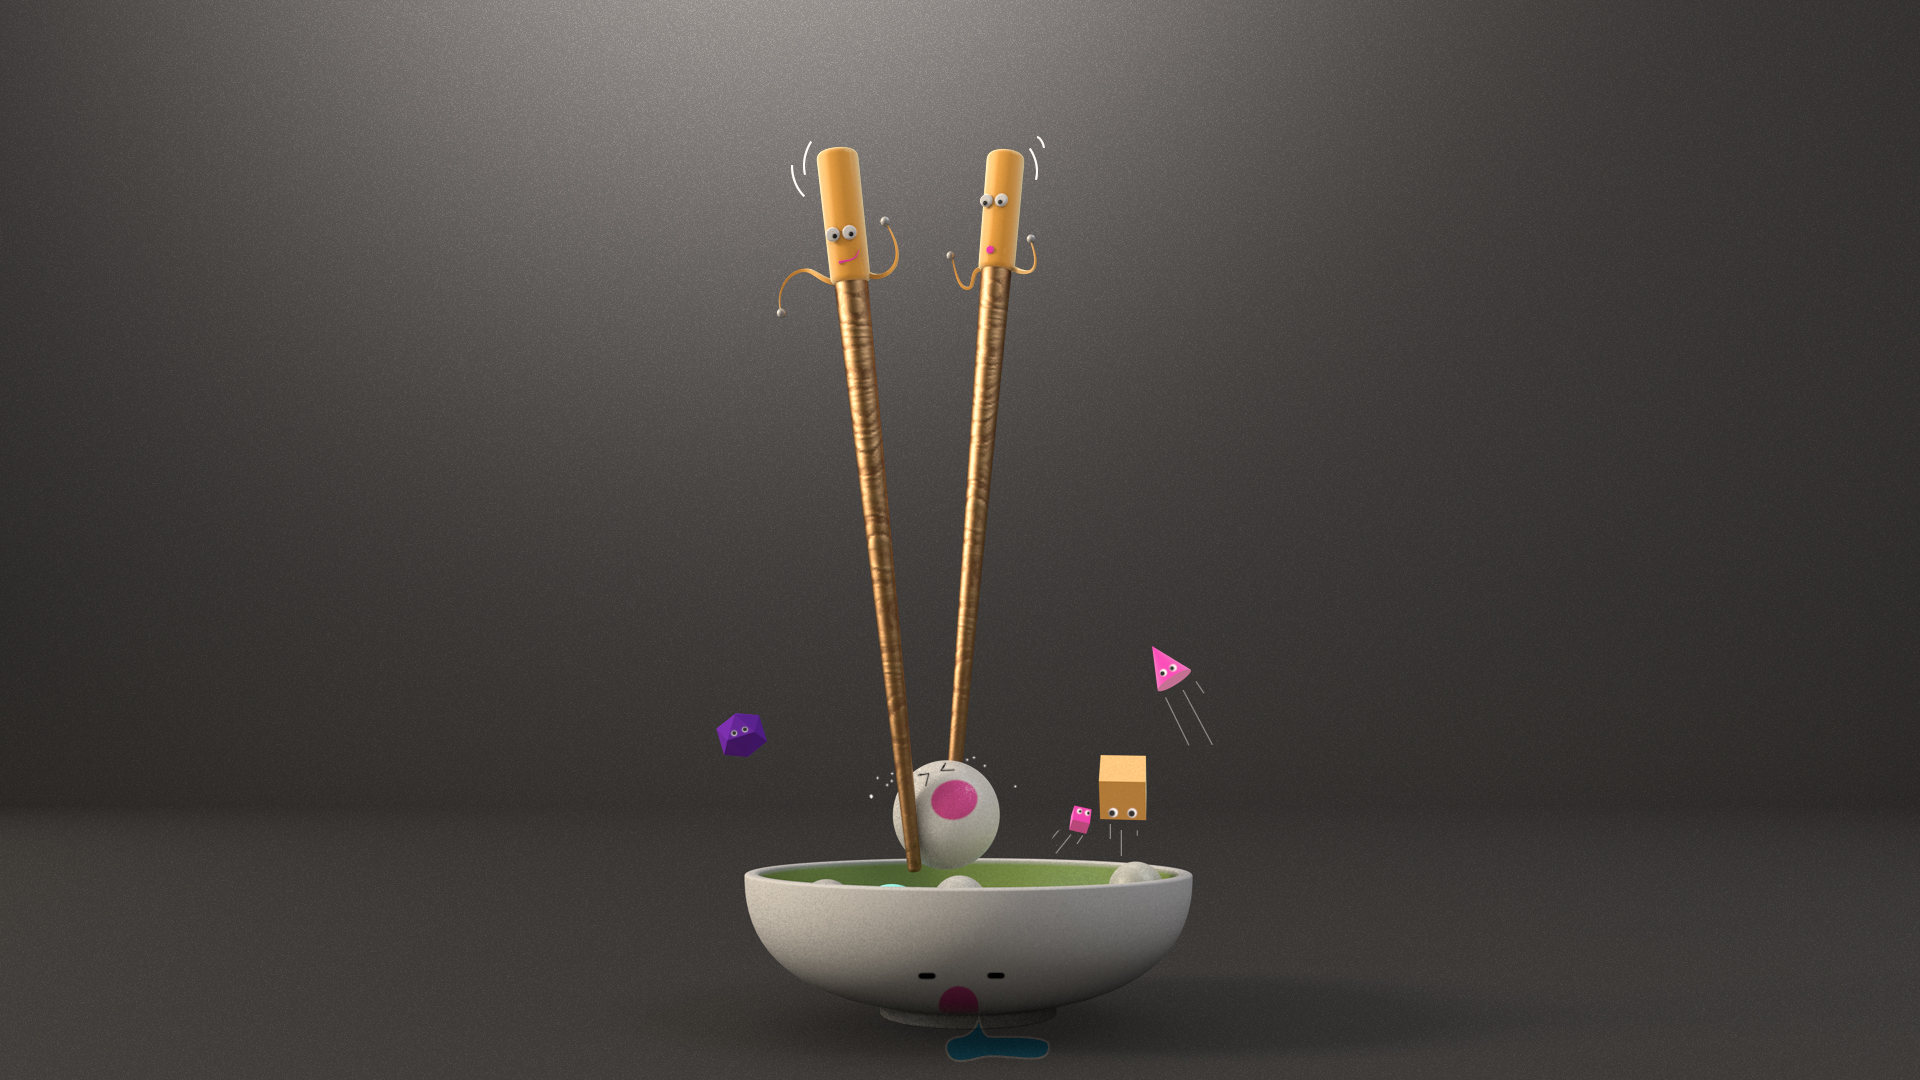 The Naughty Chopsticks